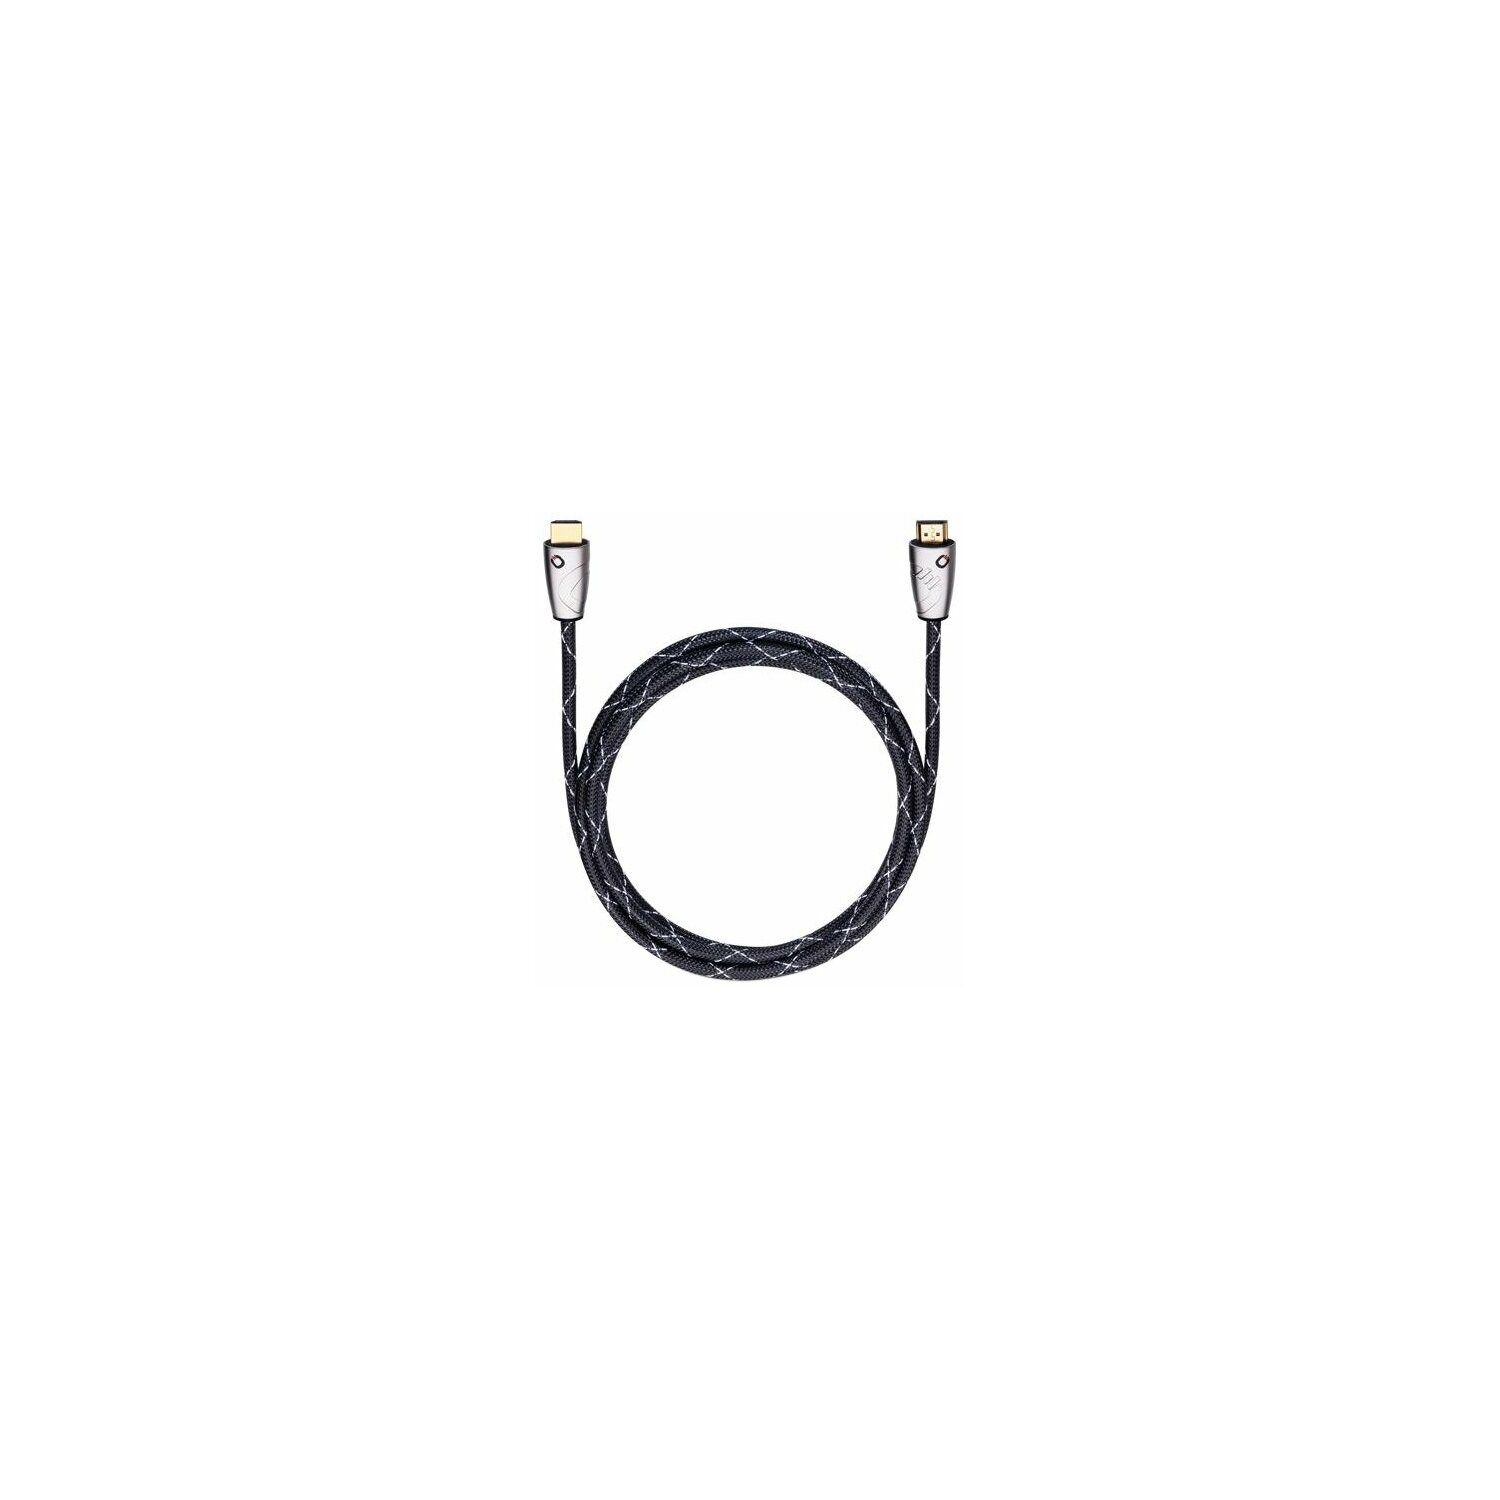 Kabel OELBACH HDMI - HDMI Easy Connect Steel 1.5m